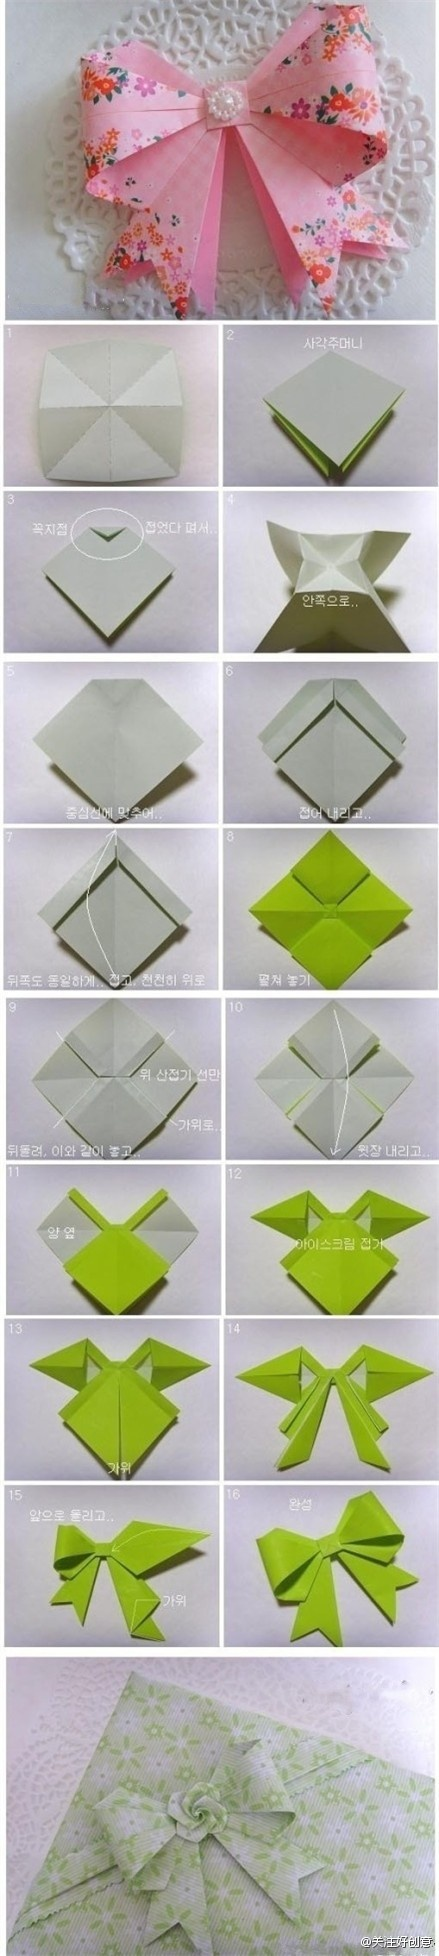 Origami bows look gorgeous; a great way to add interest to gifts.